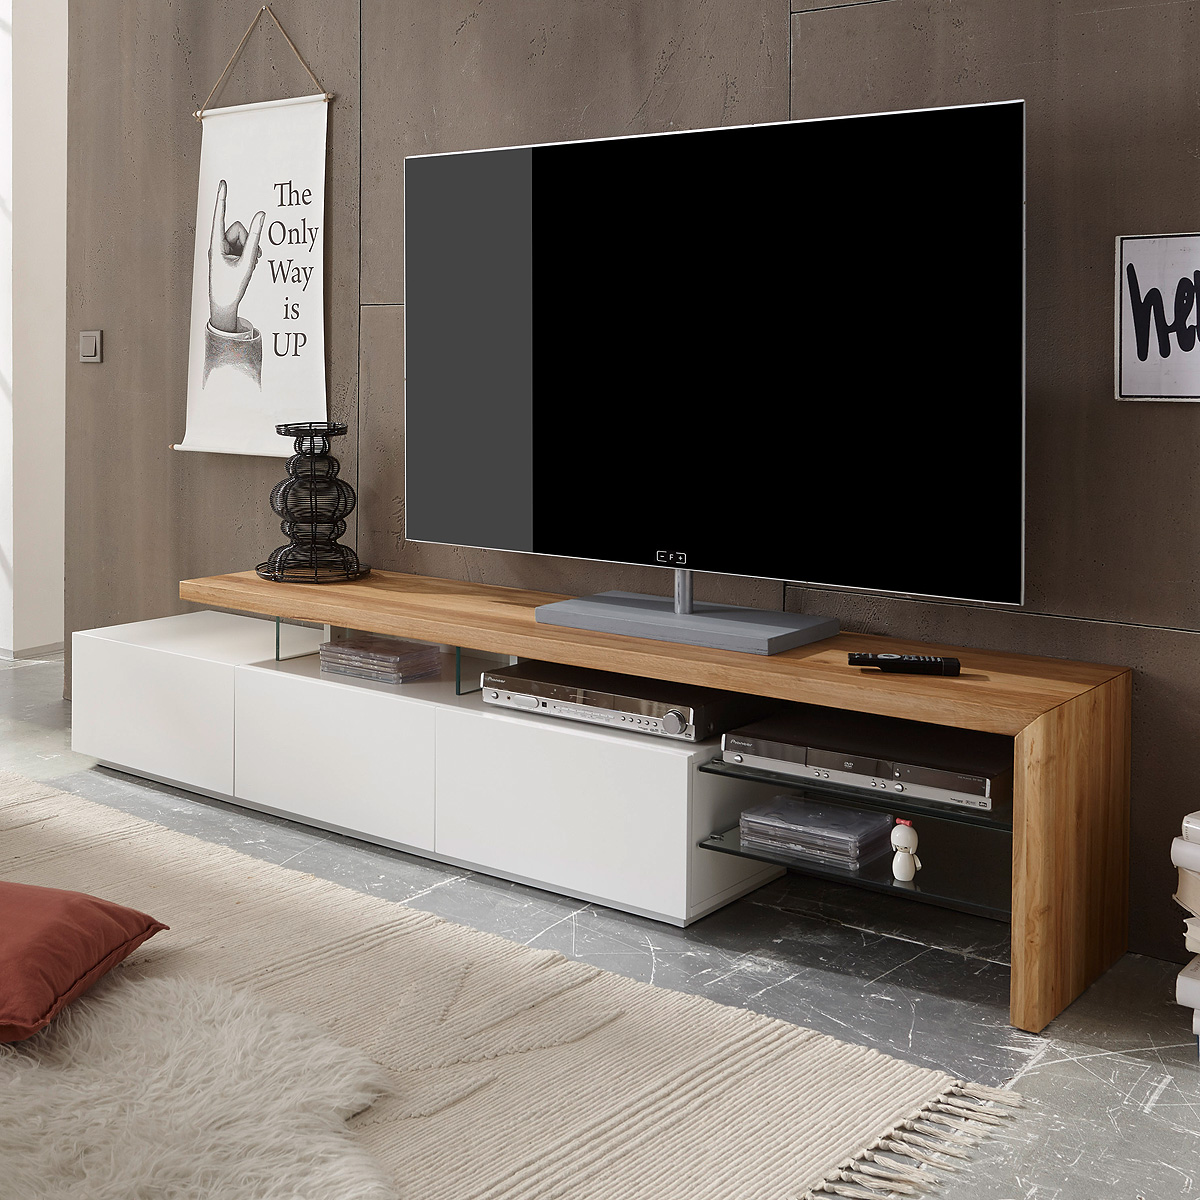 tv rack alimos tv board lowboard unterschrank wei matt lack eiche massiv eur 429 95 picclick de. Black Bedroom Furniture Sets. Home Design Ideas